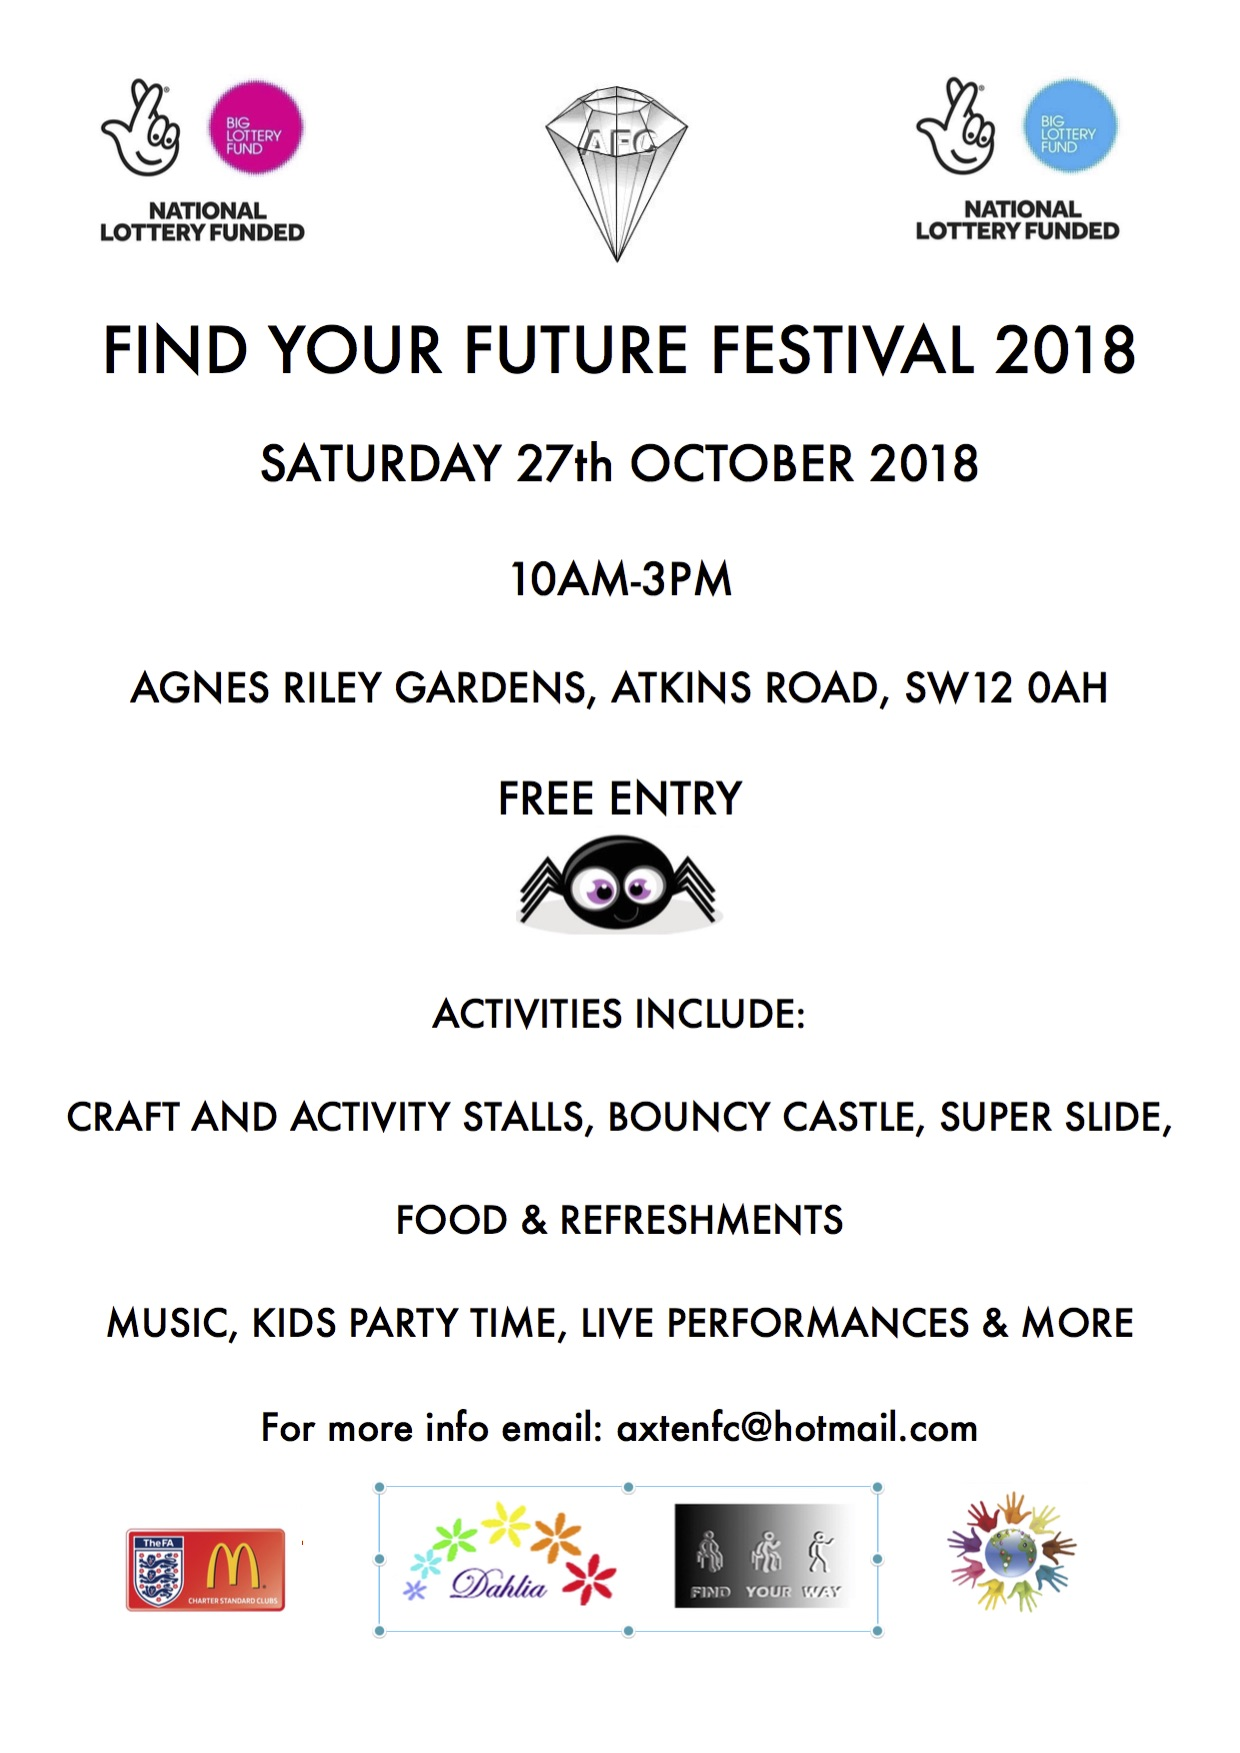 Find Your Future Festival 2018